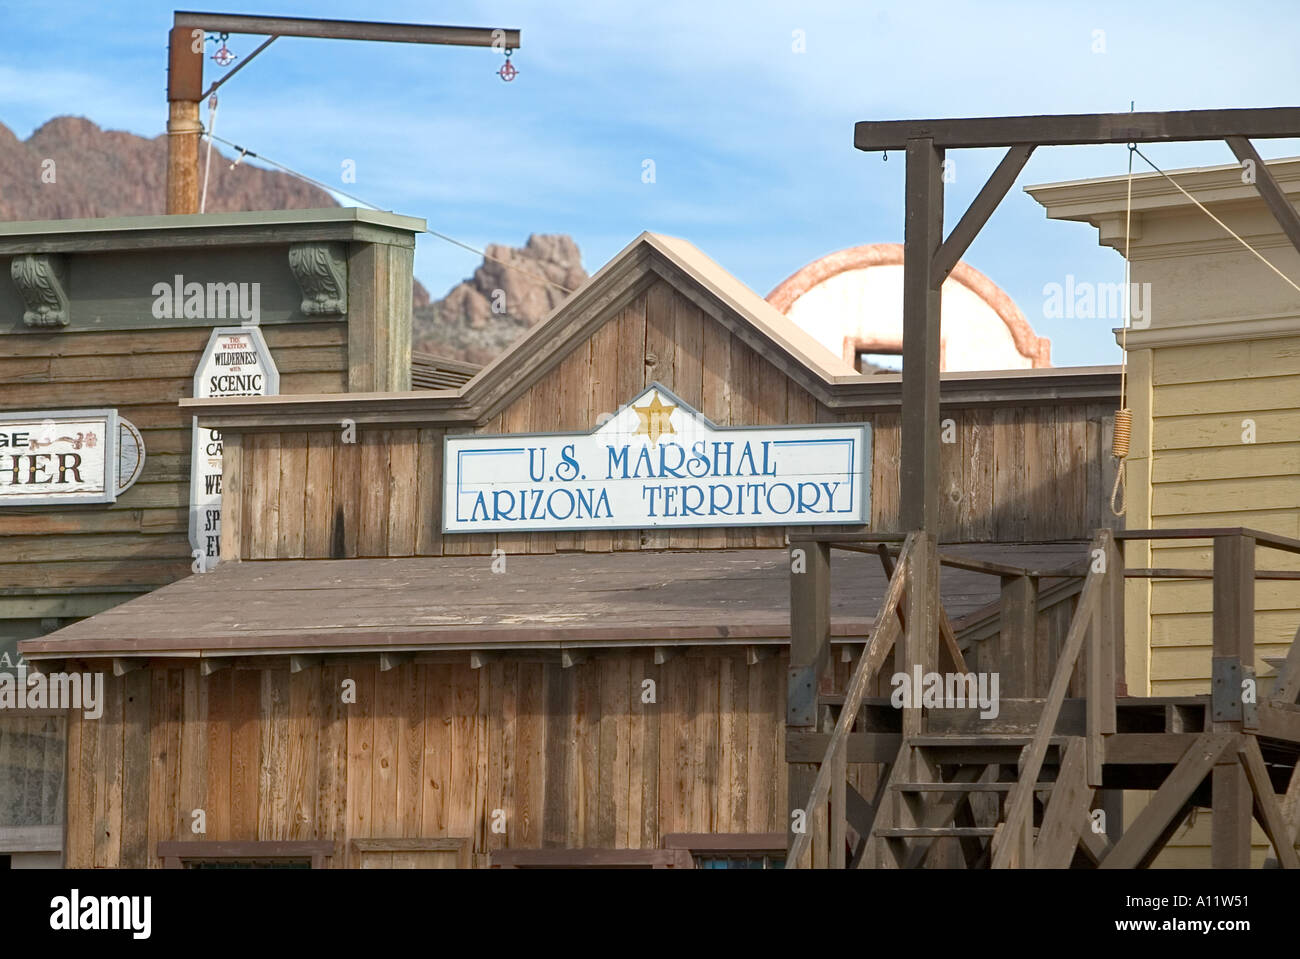 Gallows and replica buildings at Old Tucson Studios - Stock Image